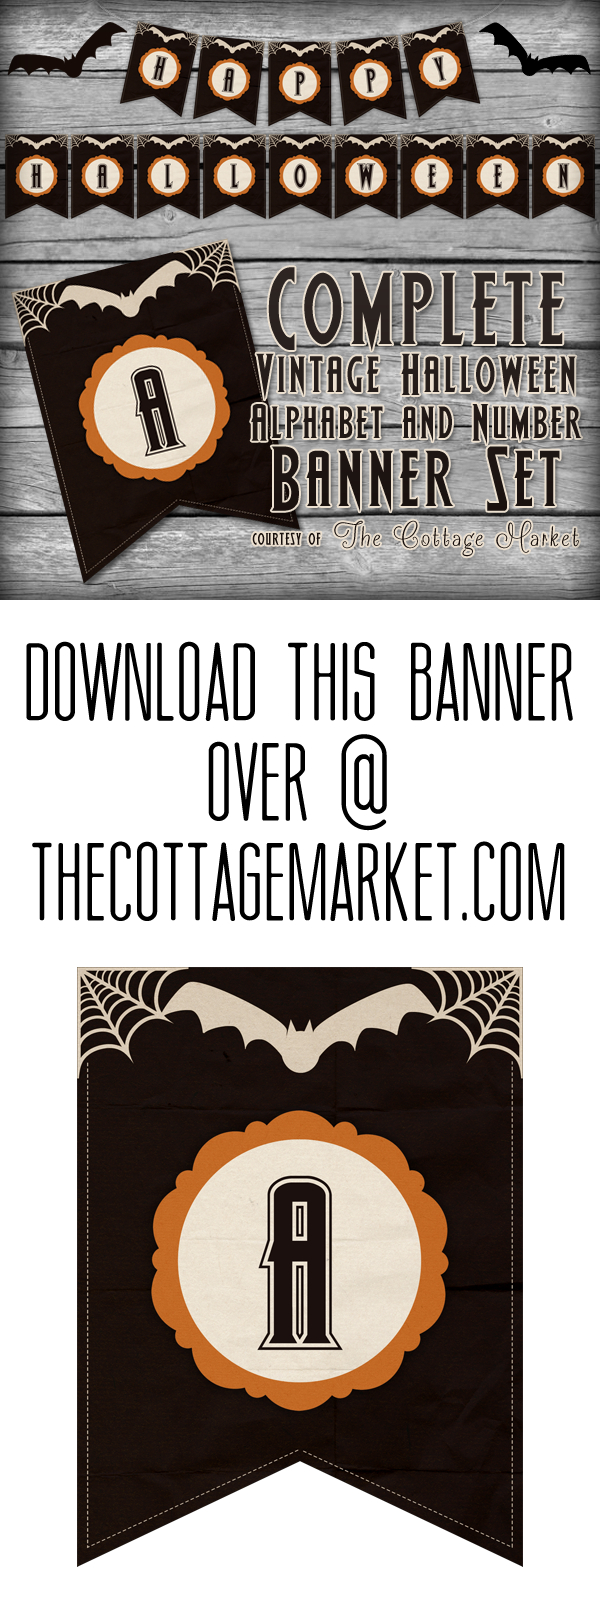 Free Printable Halloween Banner Set | The Cottage Market - Free Printable Halloween Banner